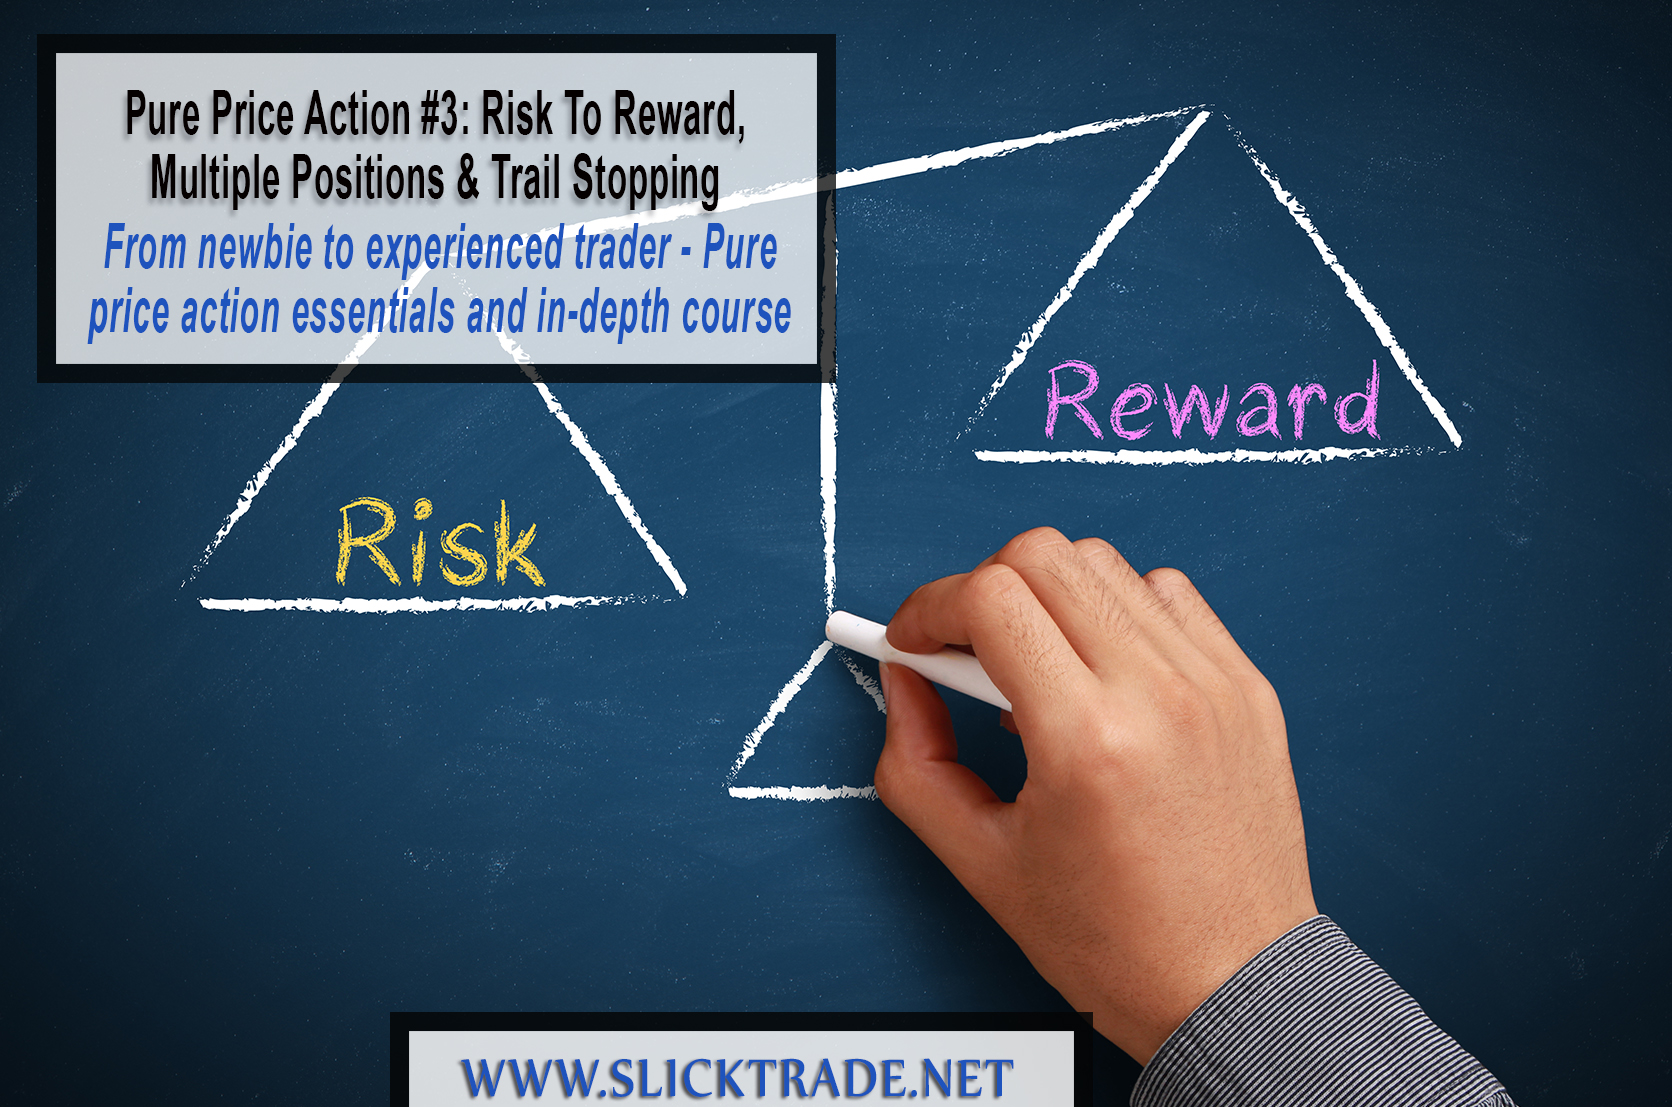 Pure Price Action Presentation – Risk To Reward Multiple Positions Trail Stopping